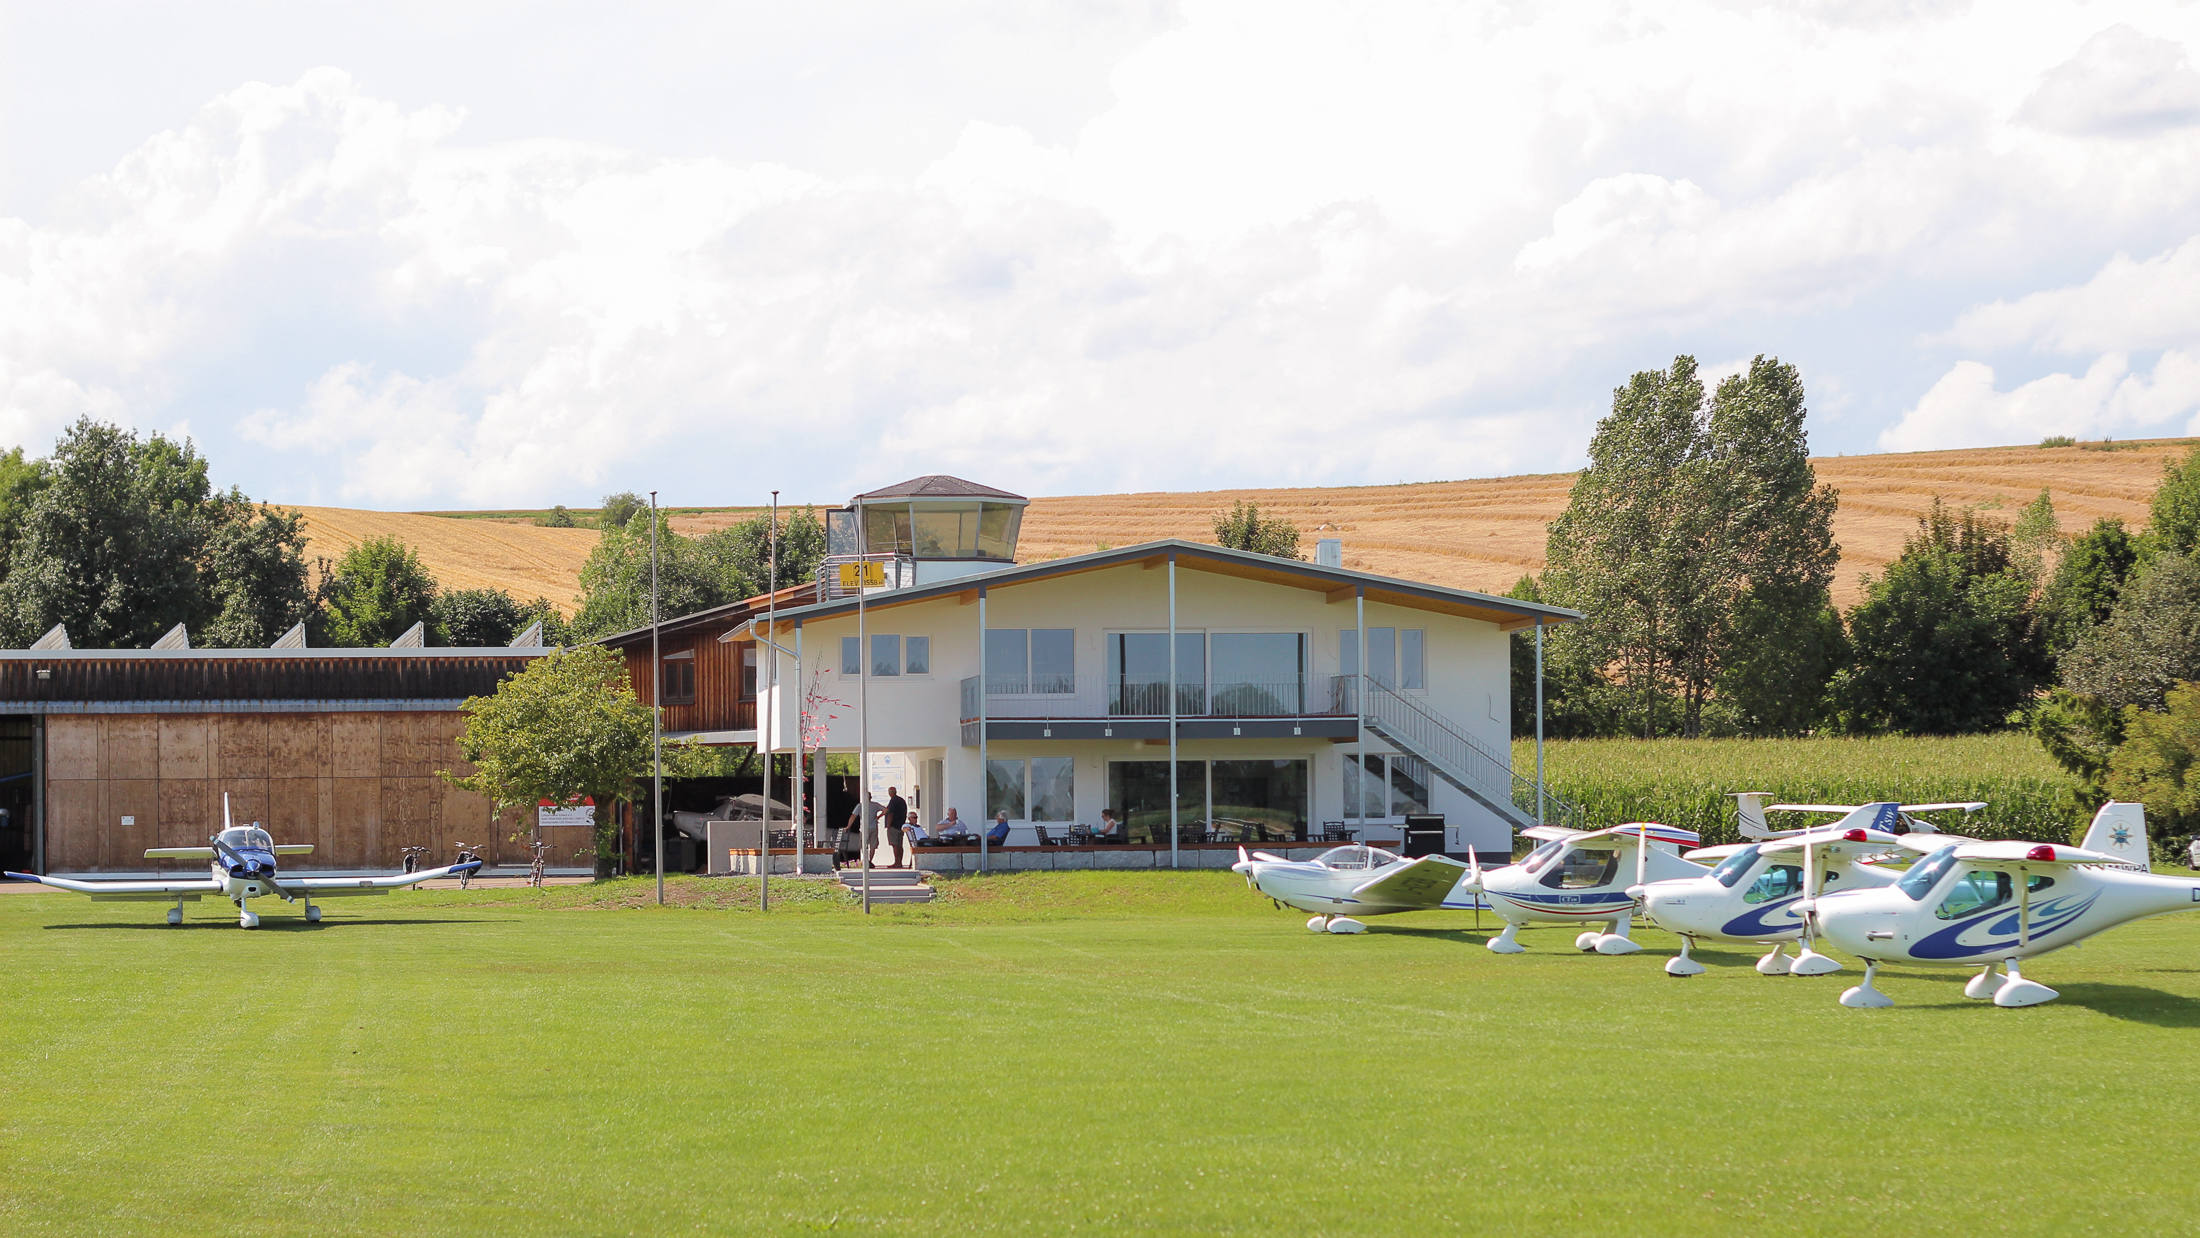 Airfield Erbach / Ulm (EDNE) in South Germany